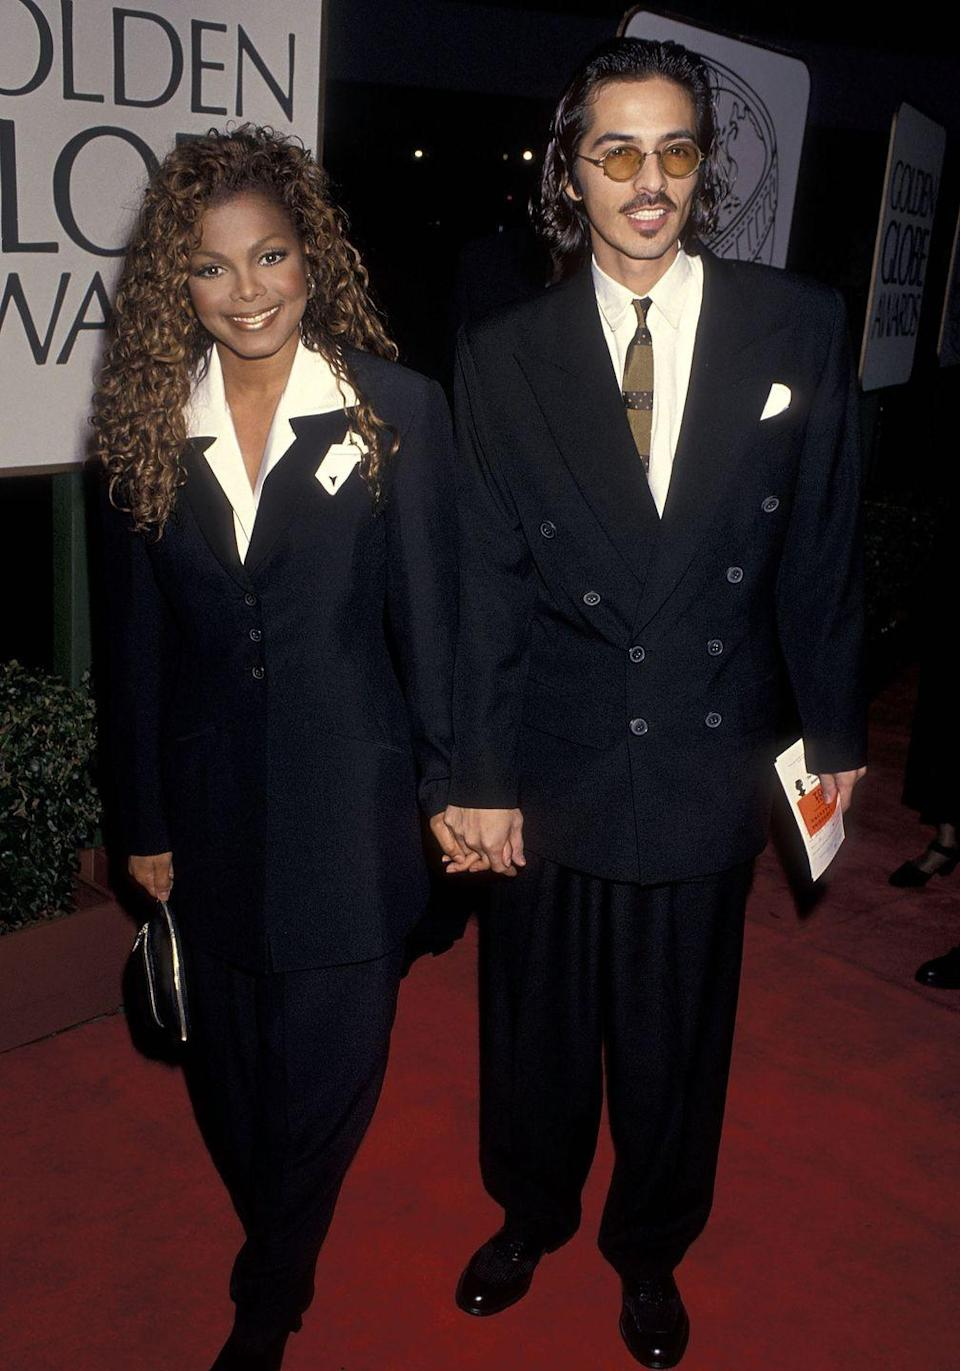 <p>The pop icon walked the carpet wearing a shiny black suit with wide lapels in 1994.</p>